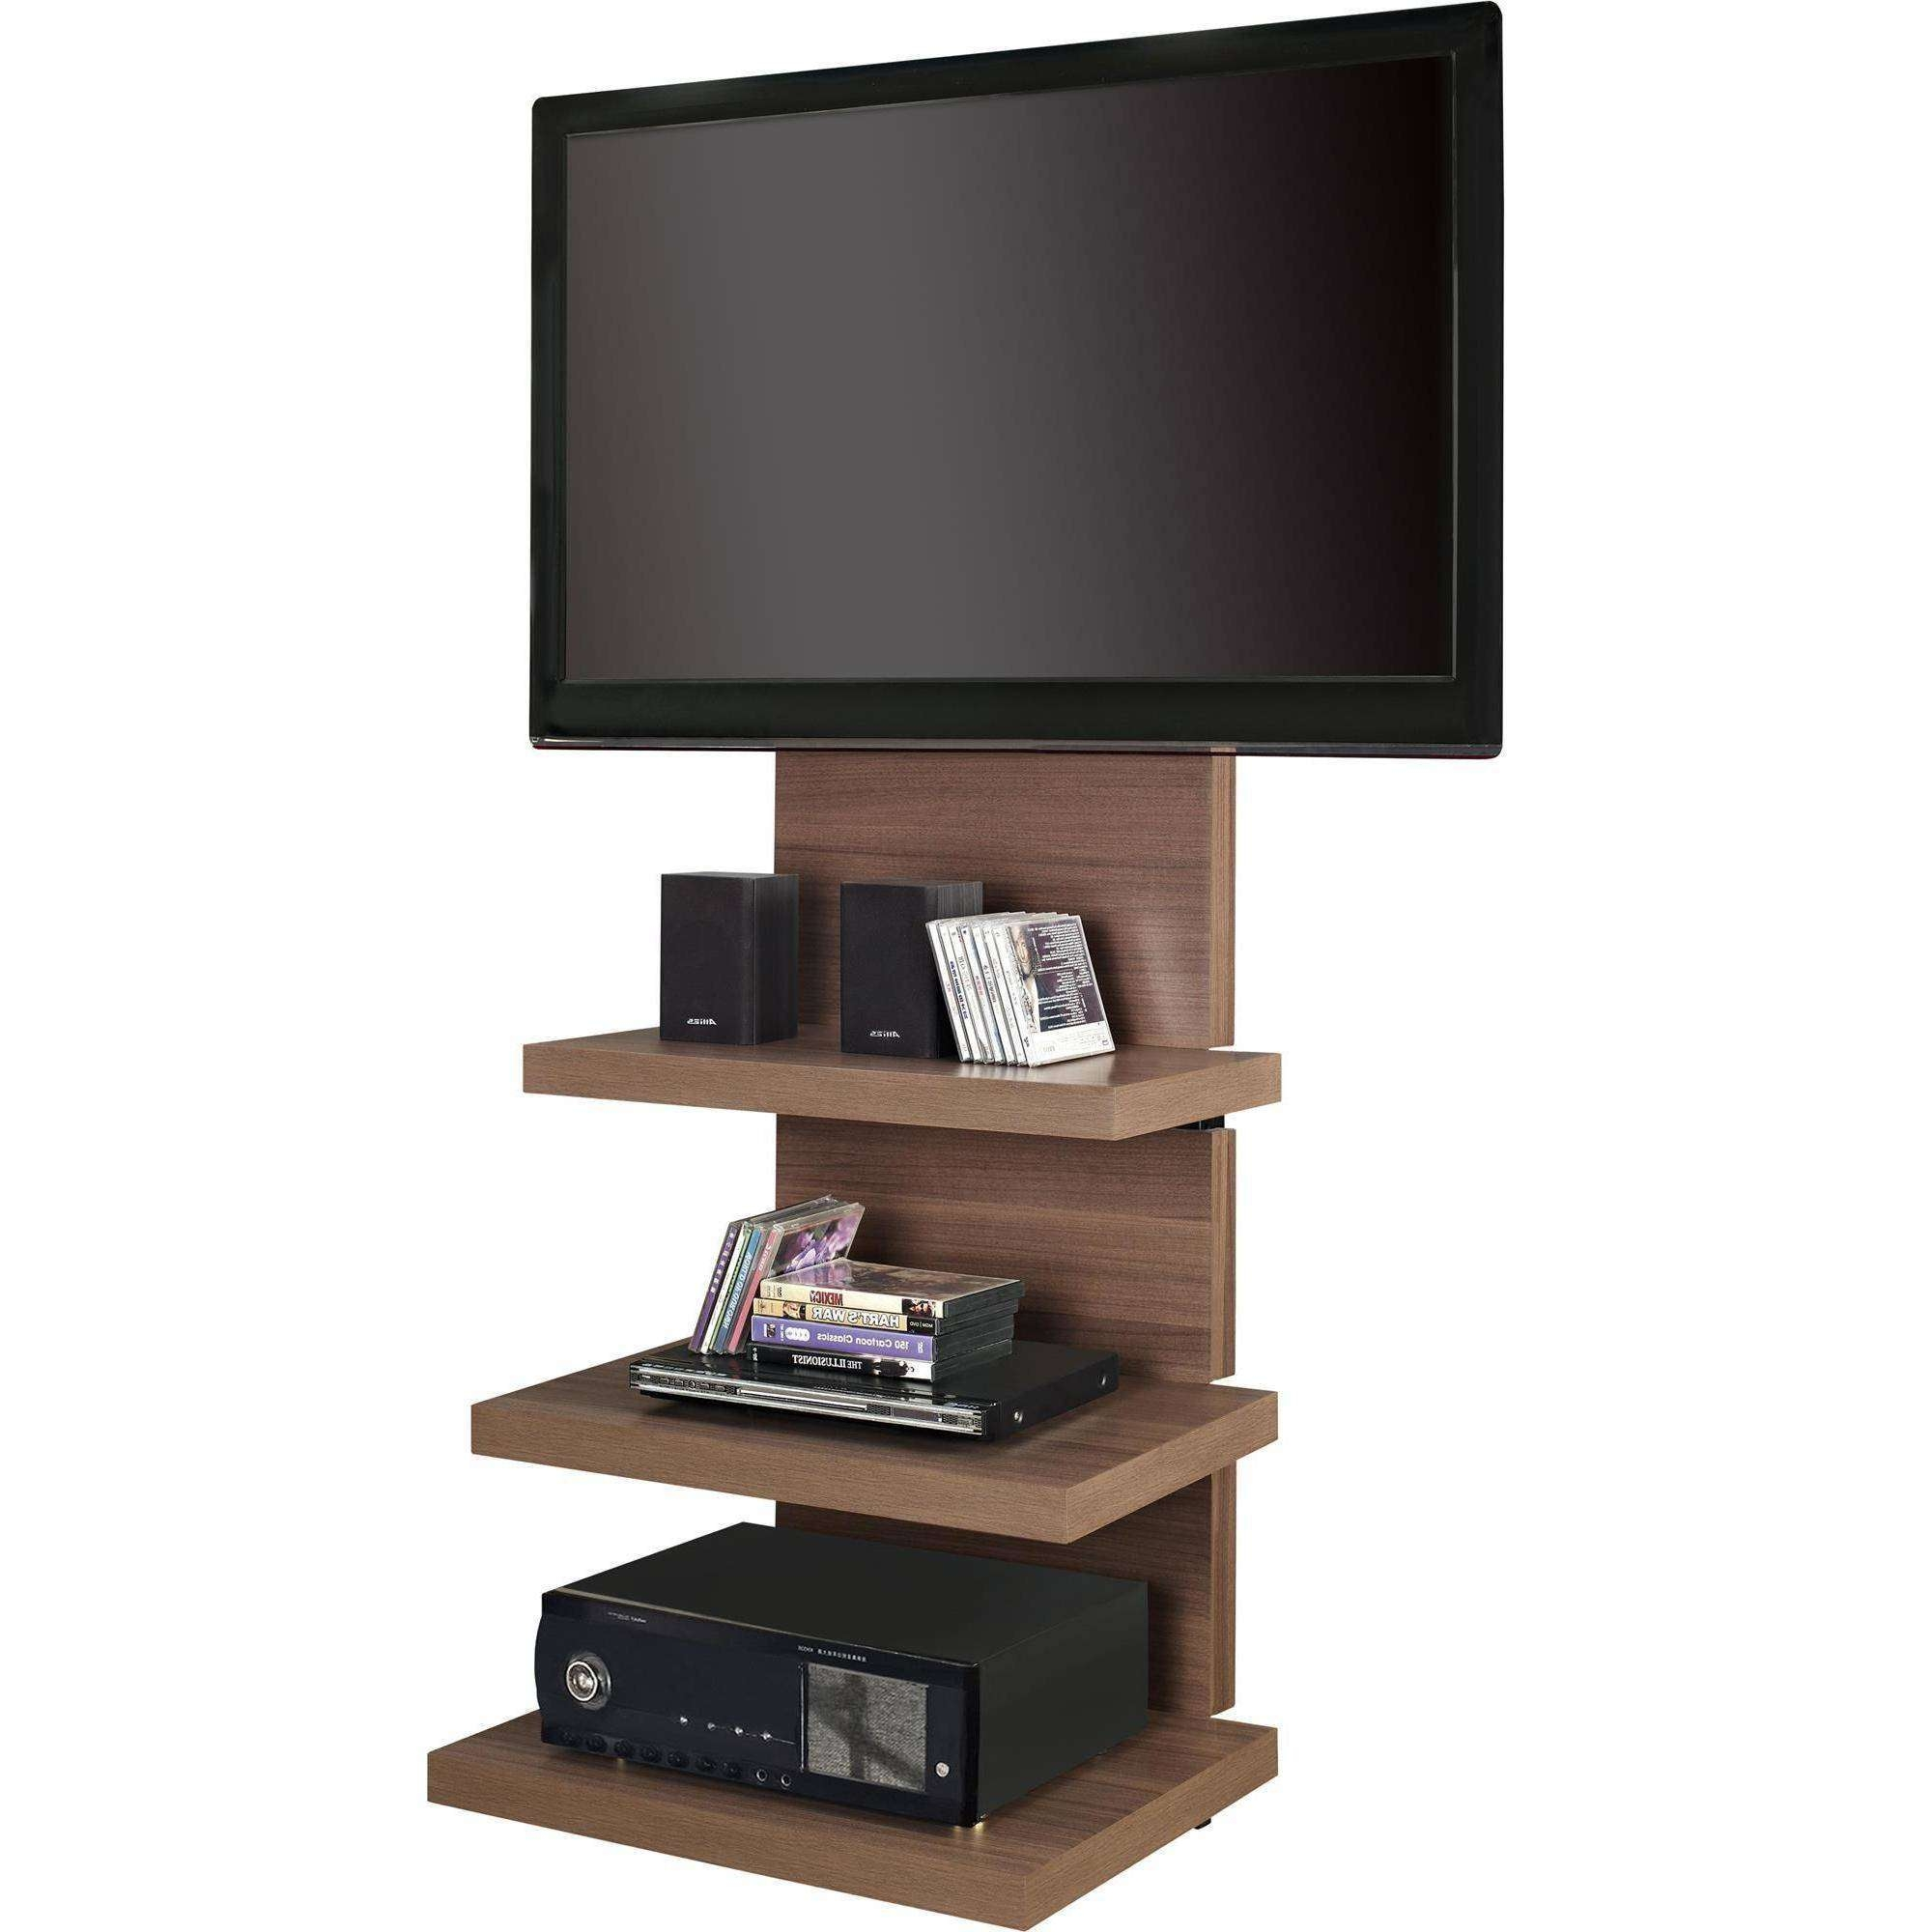 Ameriwood Home Elevation Altramount Tv Stand For Tvs Up To 60 With Modern Tv Stands For 60 Inch Tvs (View 2 of 15)